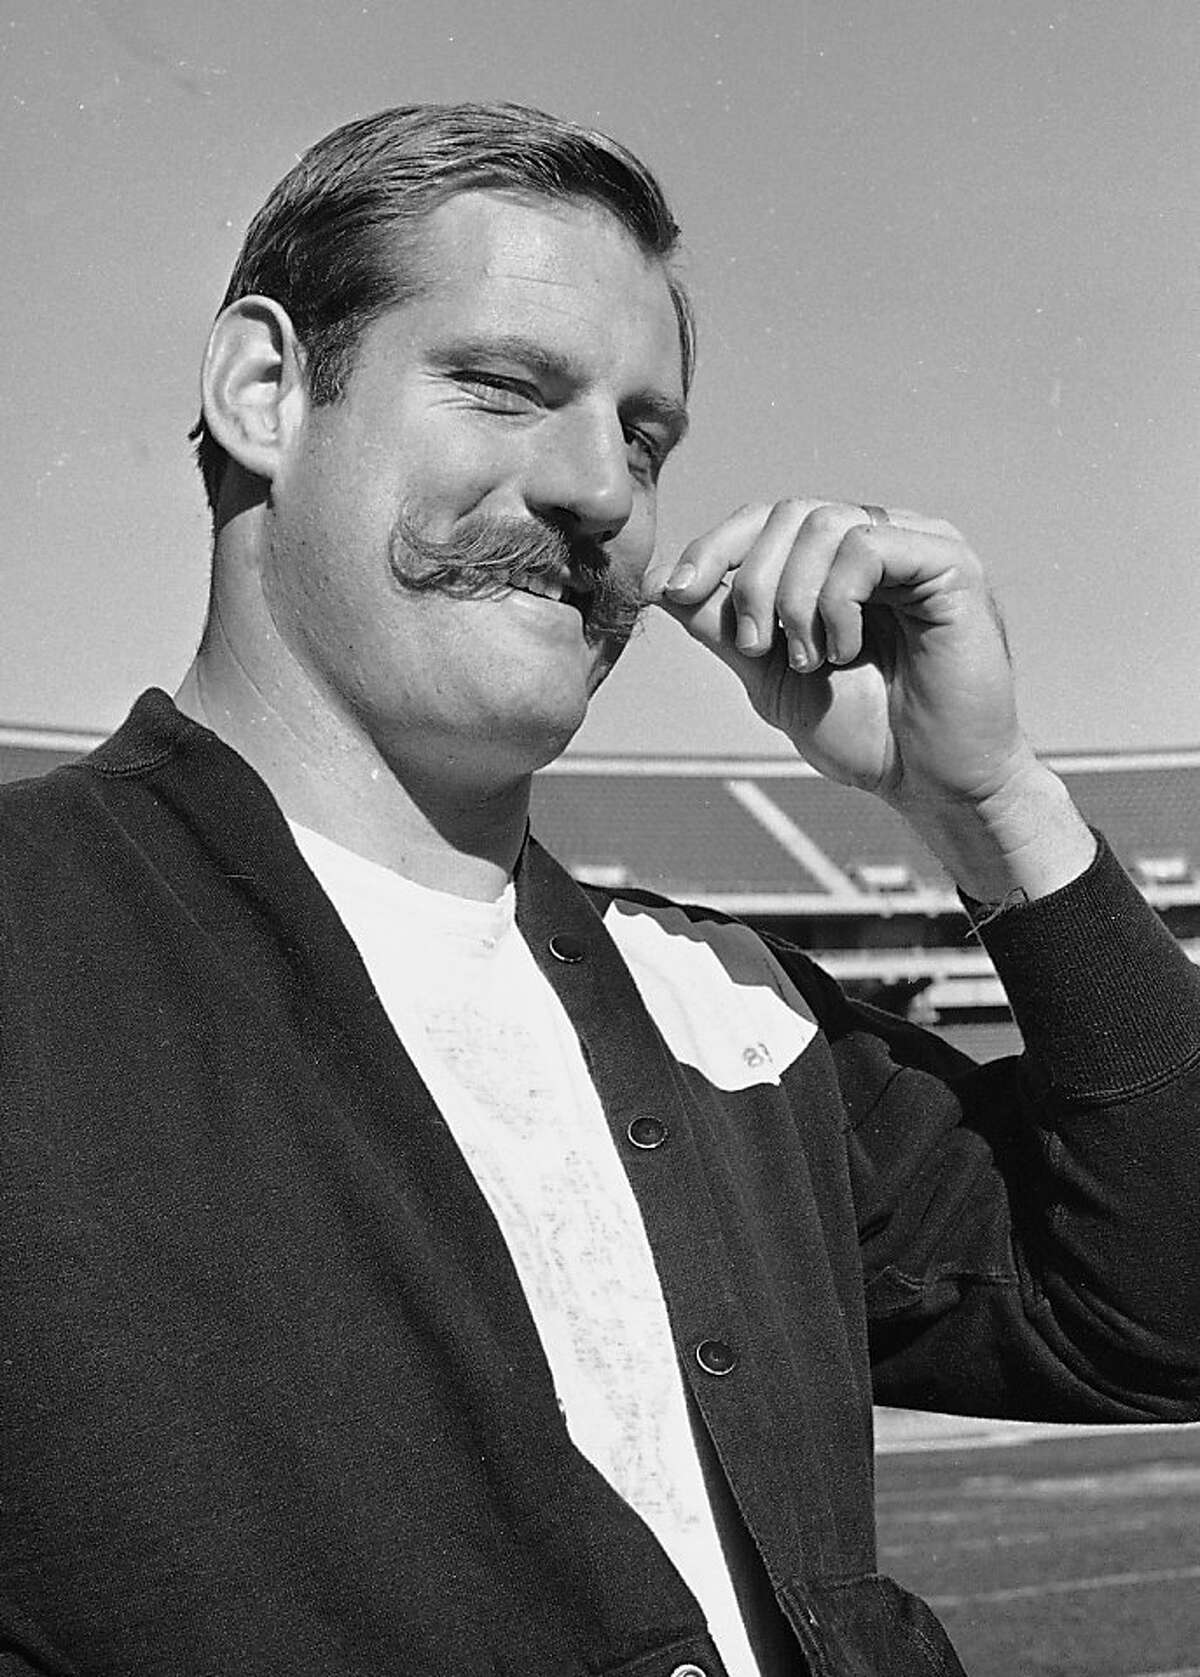 FILE - In this Jan. 3, 1968, file photo, Oakland Raiders defensive end Ben Davidson twirls his handlebar moustache in Oakland, Calif., as he contemplated the coming meeting with the Green Bay Packers in the NFL championship game. Davidson, the hulking defensive end who starred for the Raiders in the 1960s before becoming a famous television pitch man, died Monday night, July 2, 2012. He was 72. (AP Photo/Ernest Bennett)